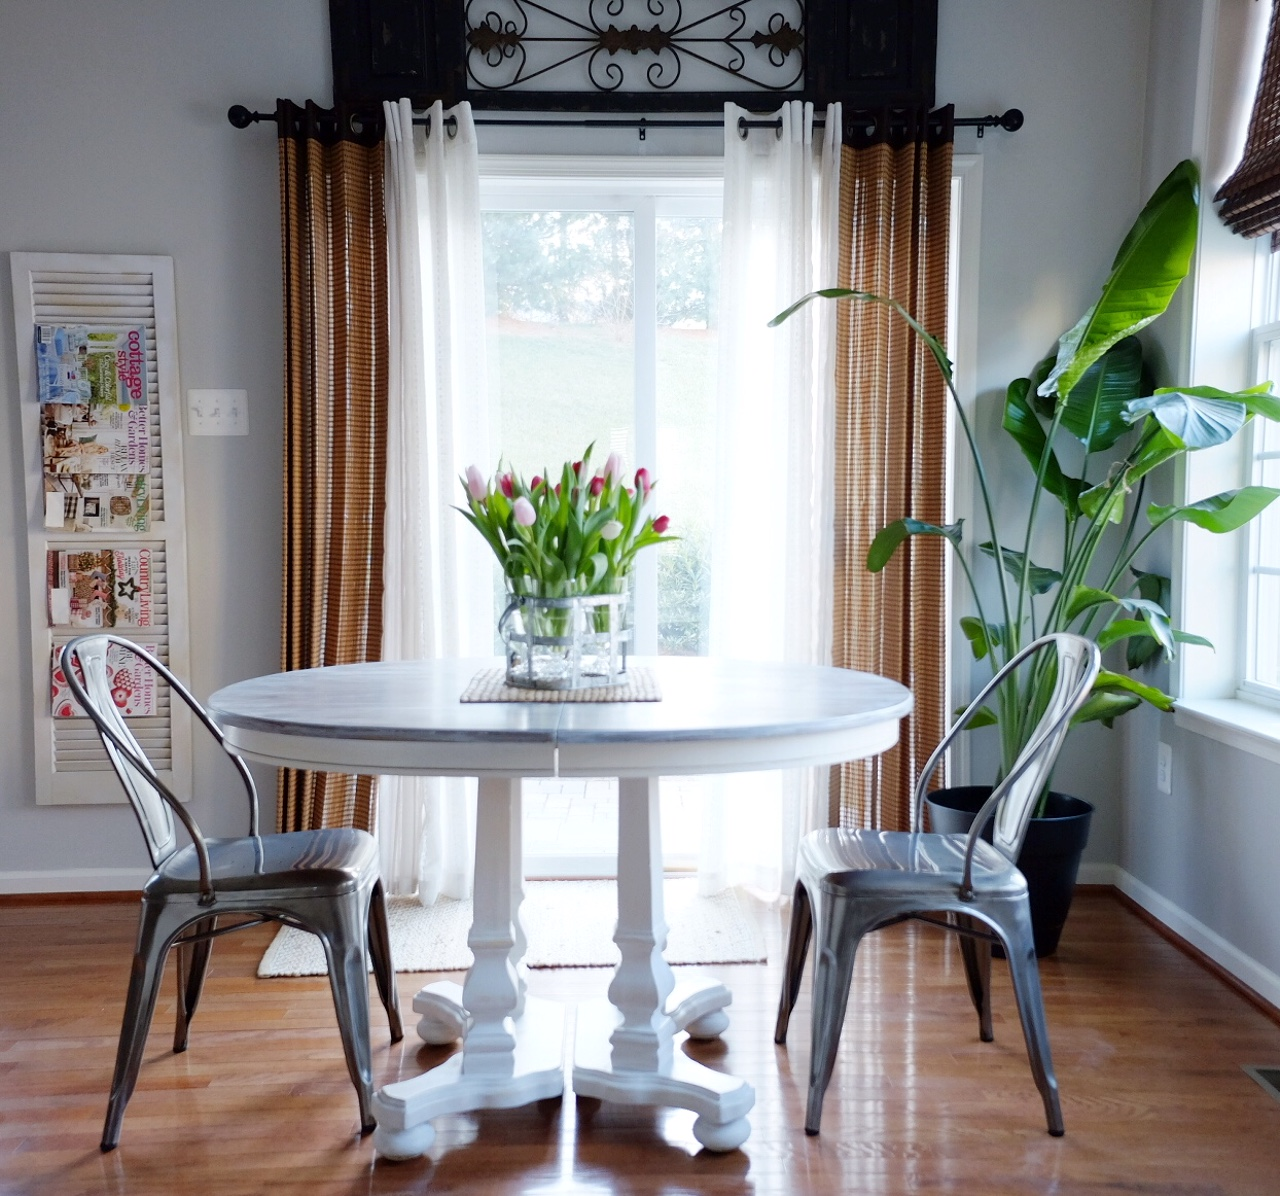 Revamp a table using homemade chalk paint